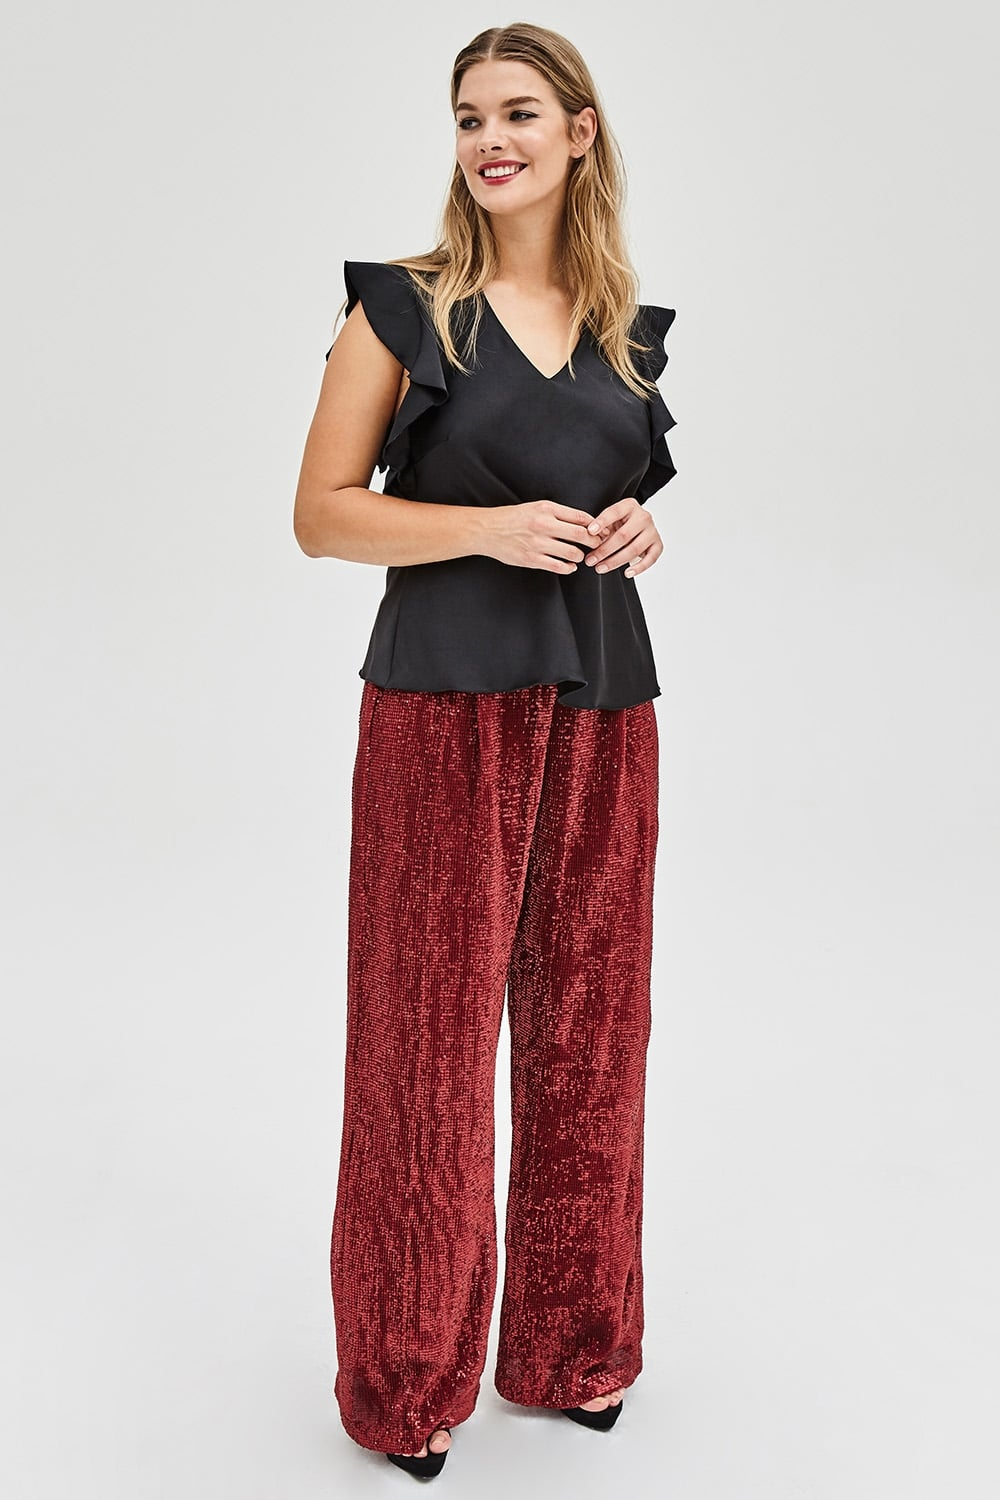 model wearing Elvi Black Satin Ruffle Top and Red Sequin Trousers